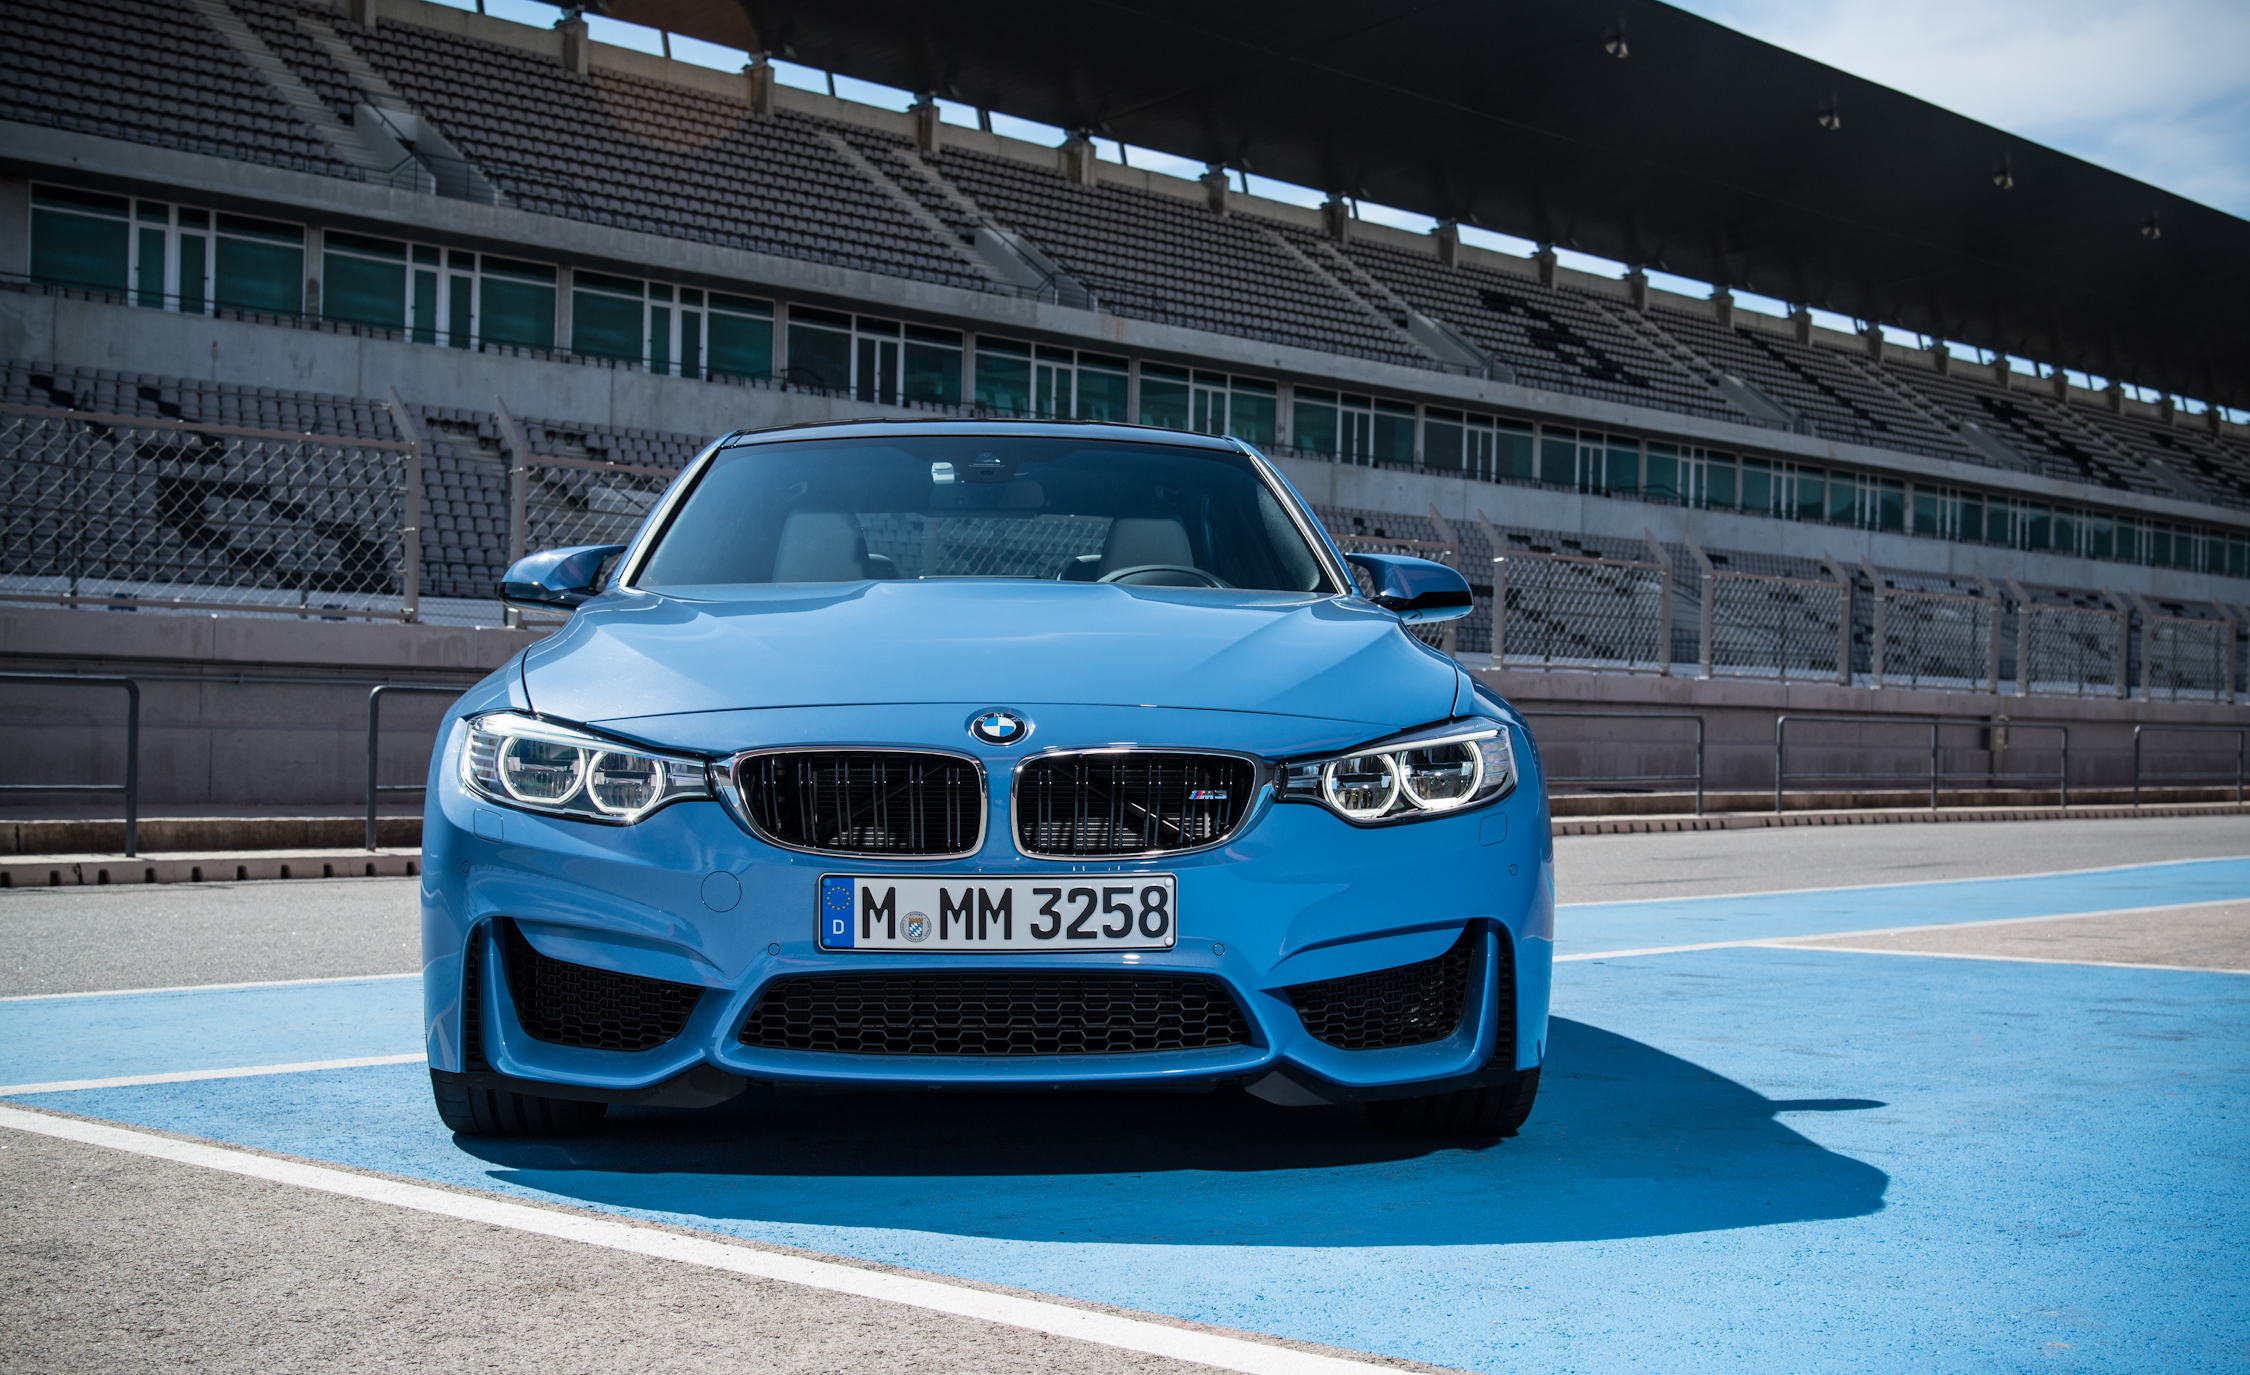 2015 BMW M3 Sedan (Photo 9 of 55)